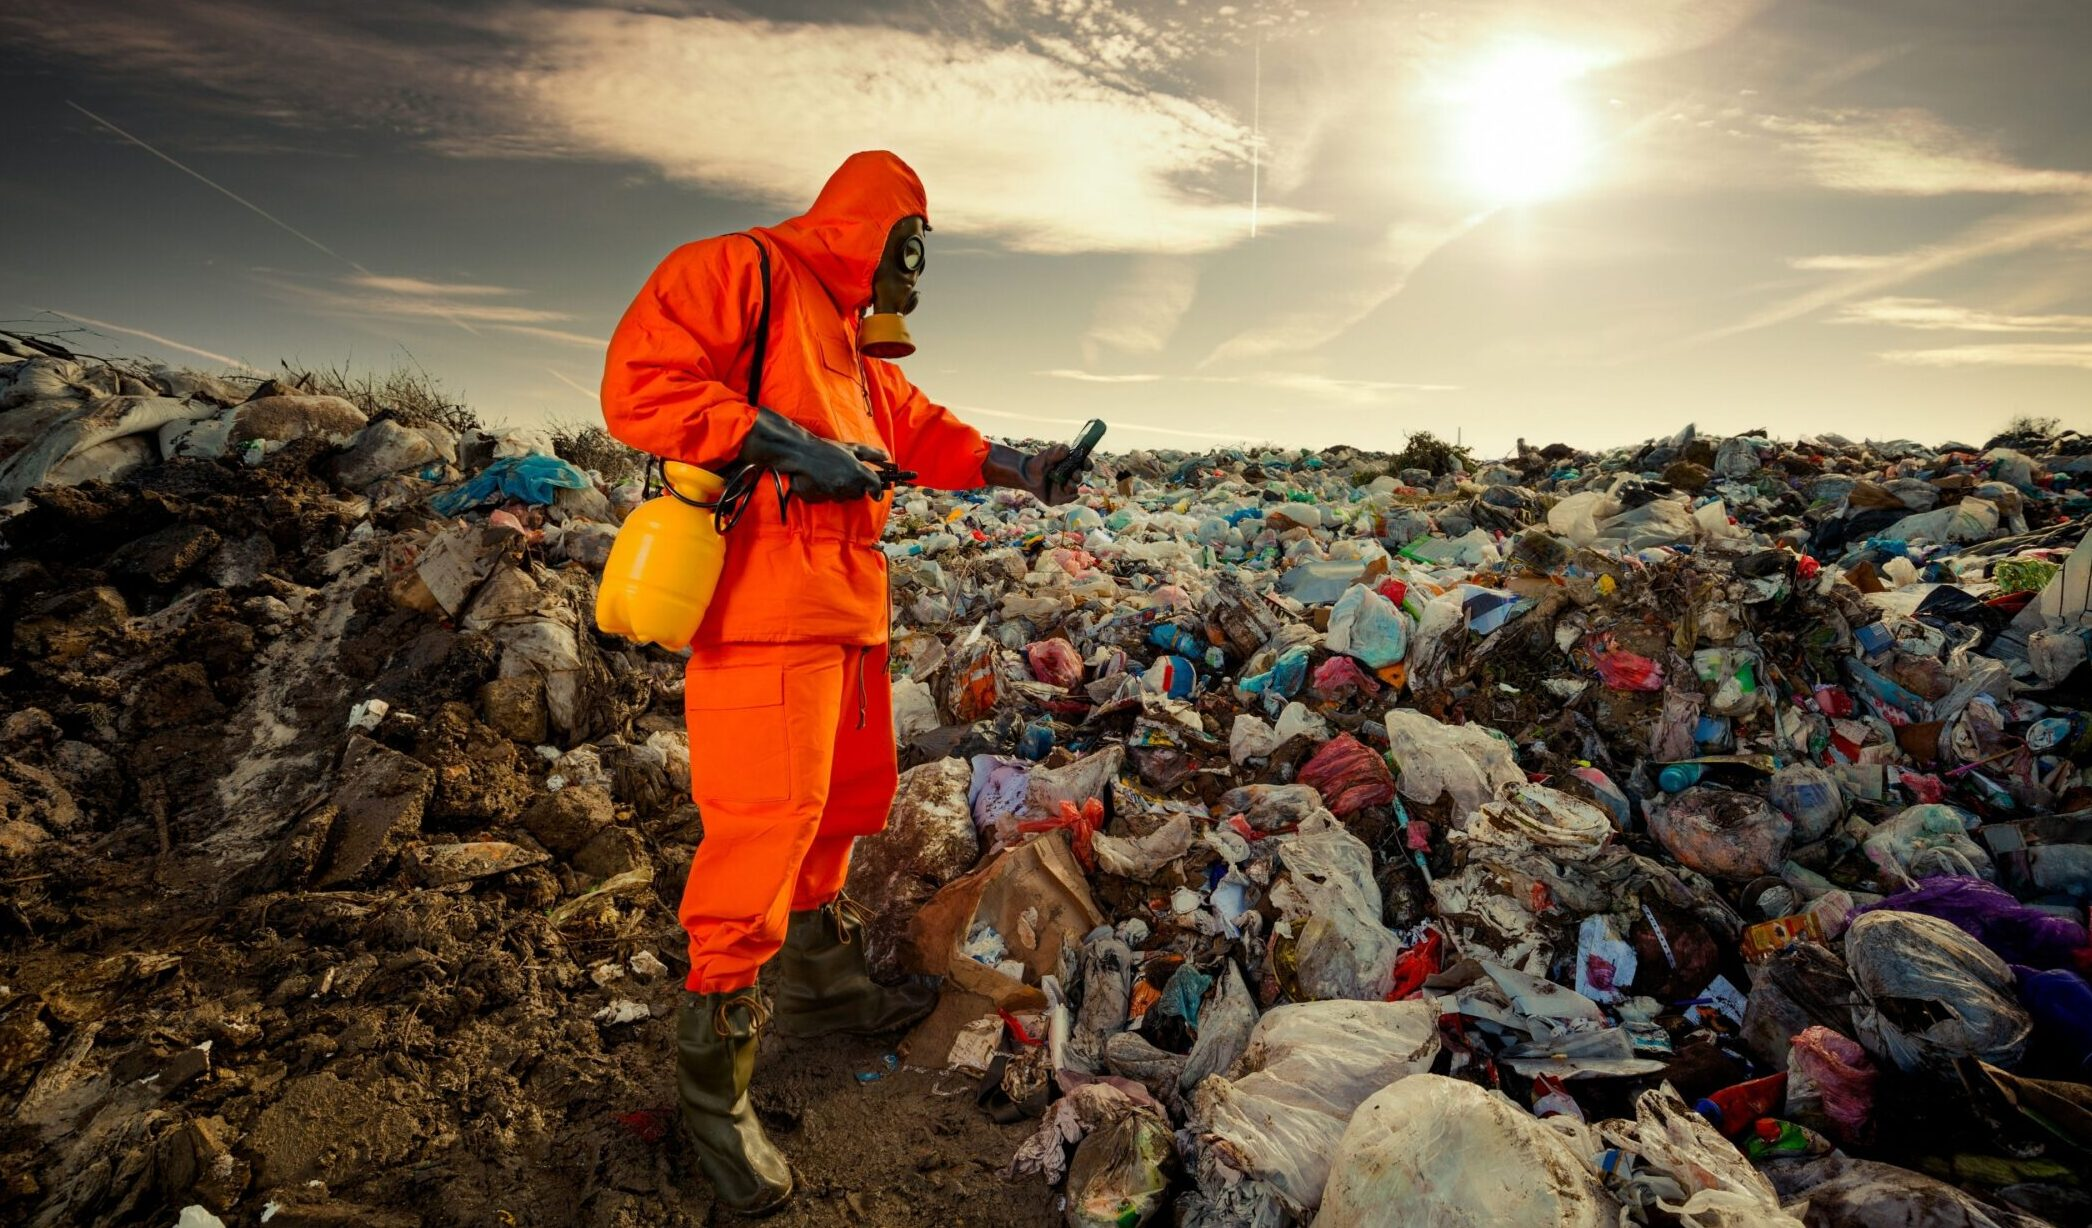 The link between waste management, circular economy and solving climate change